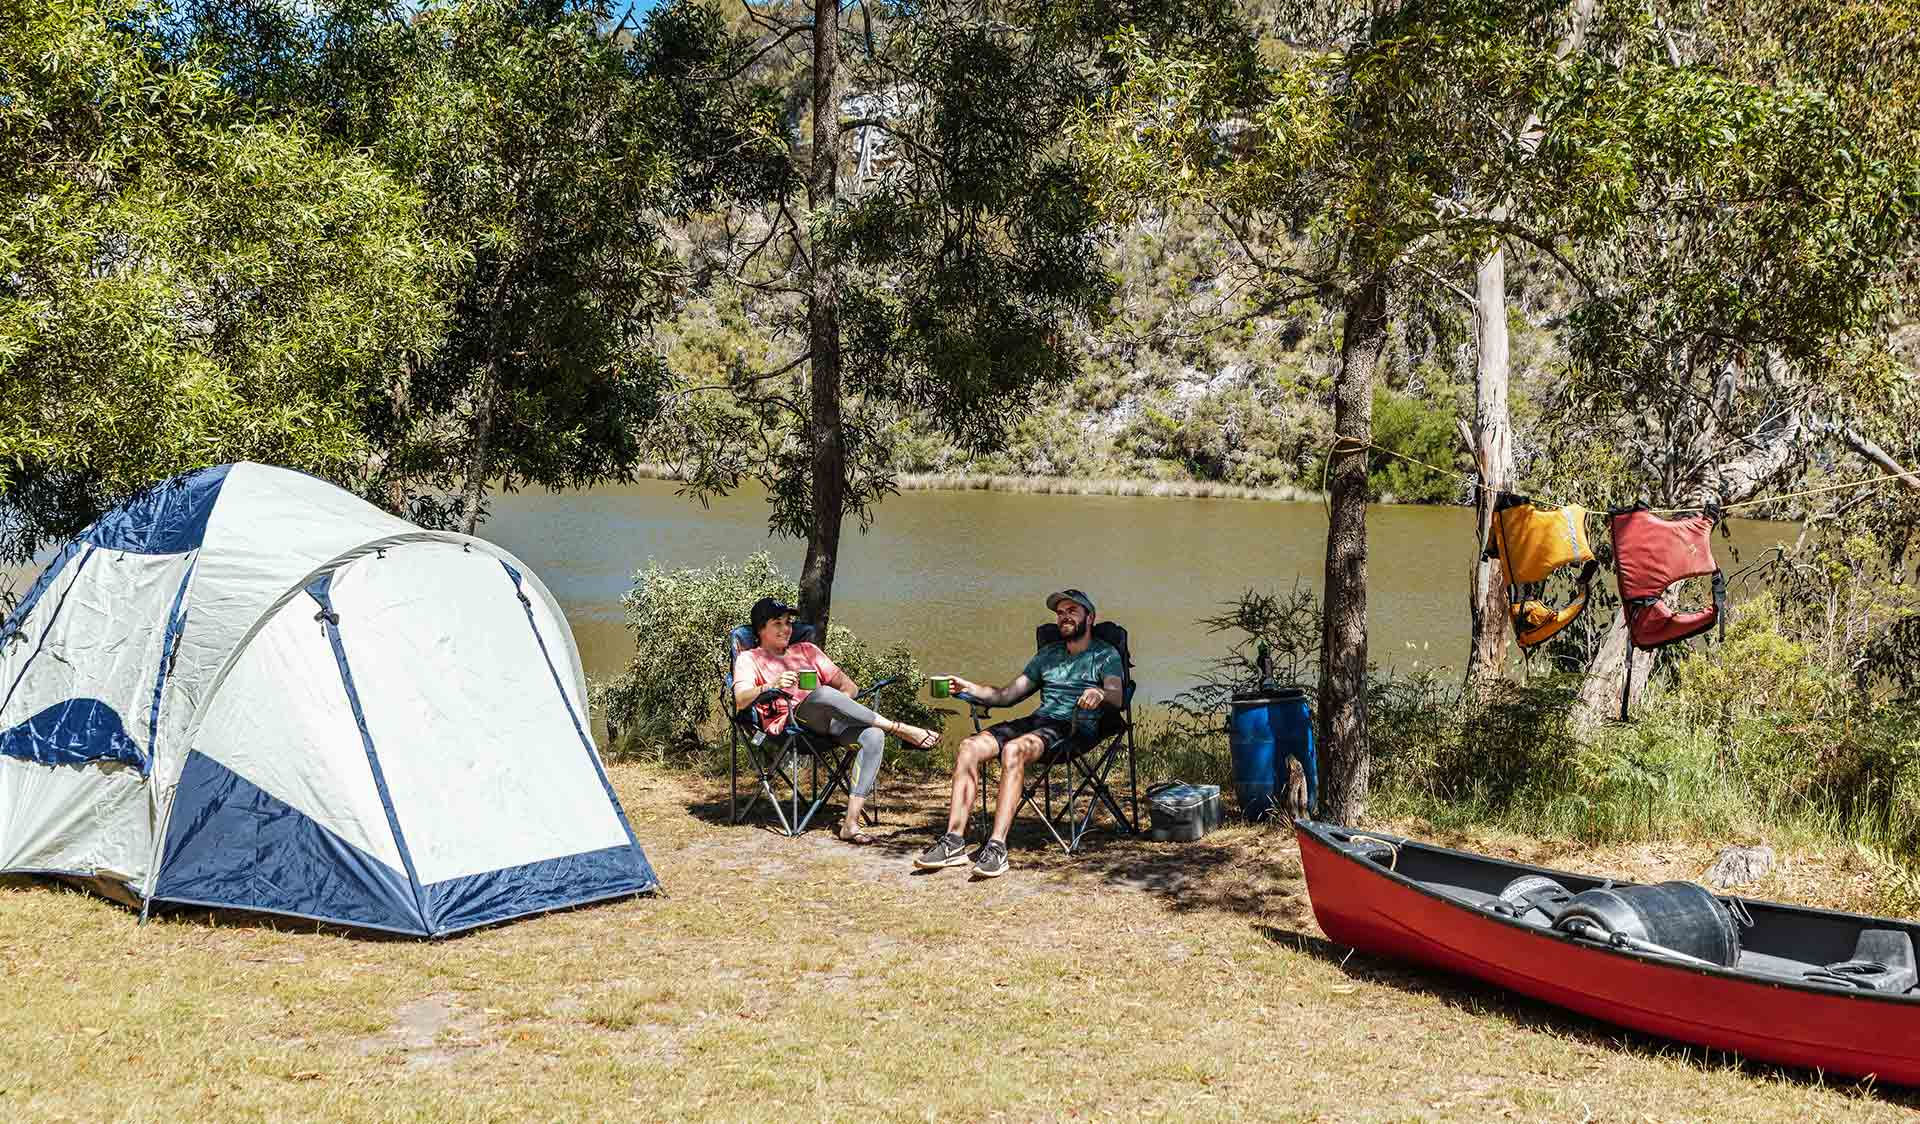 Two campers relax at their campsite after a long paddle.